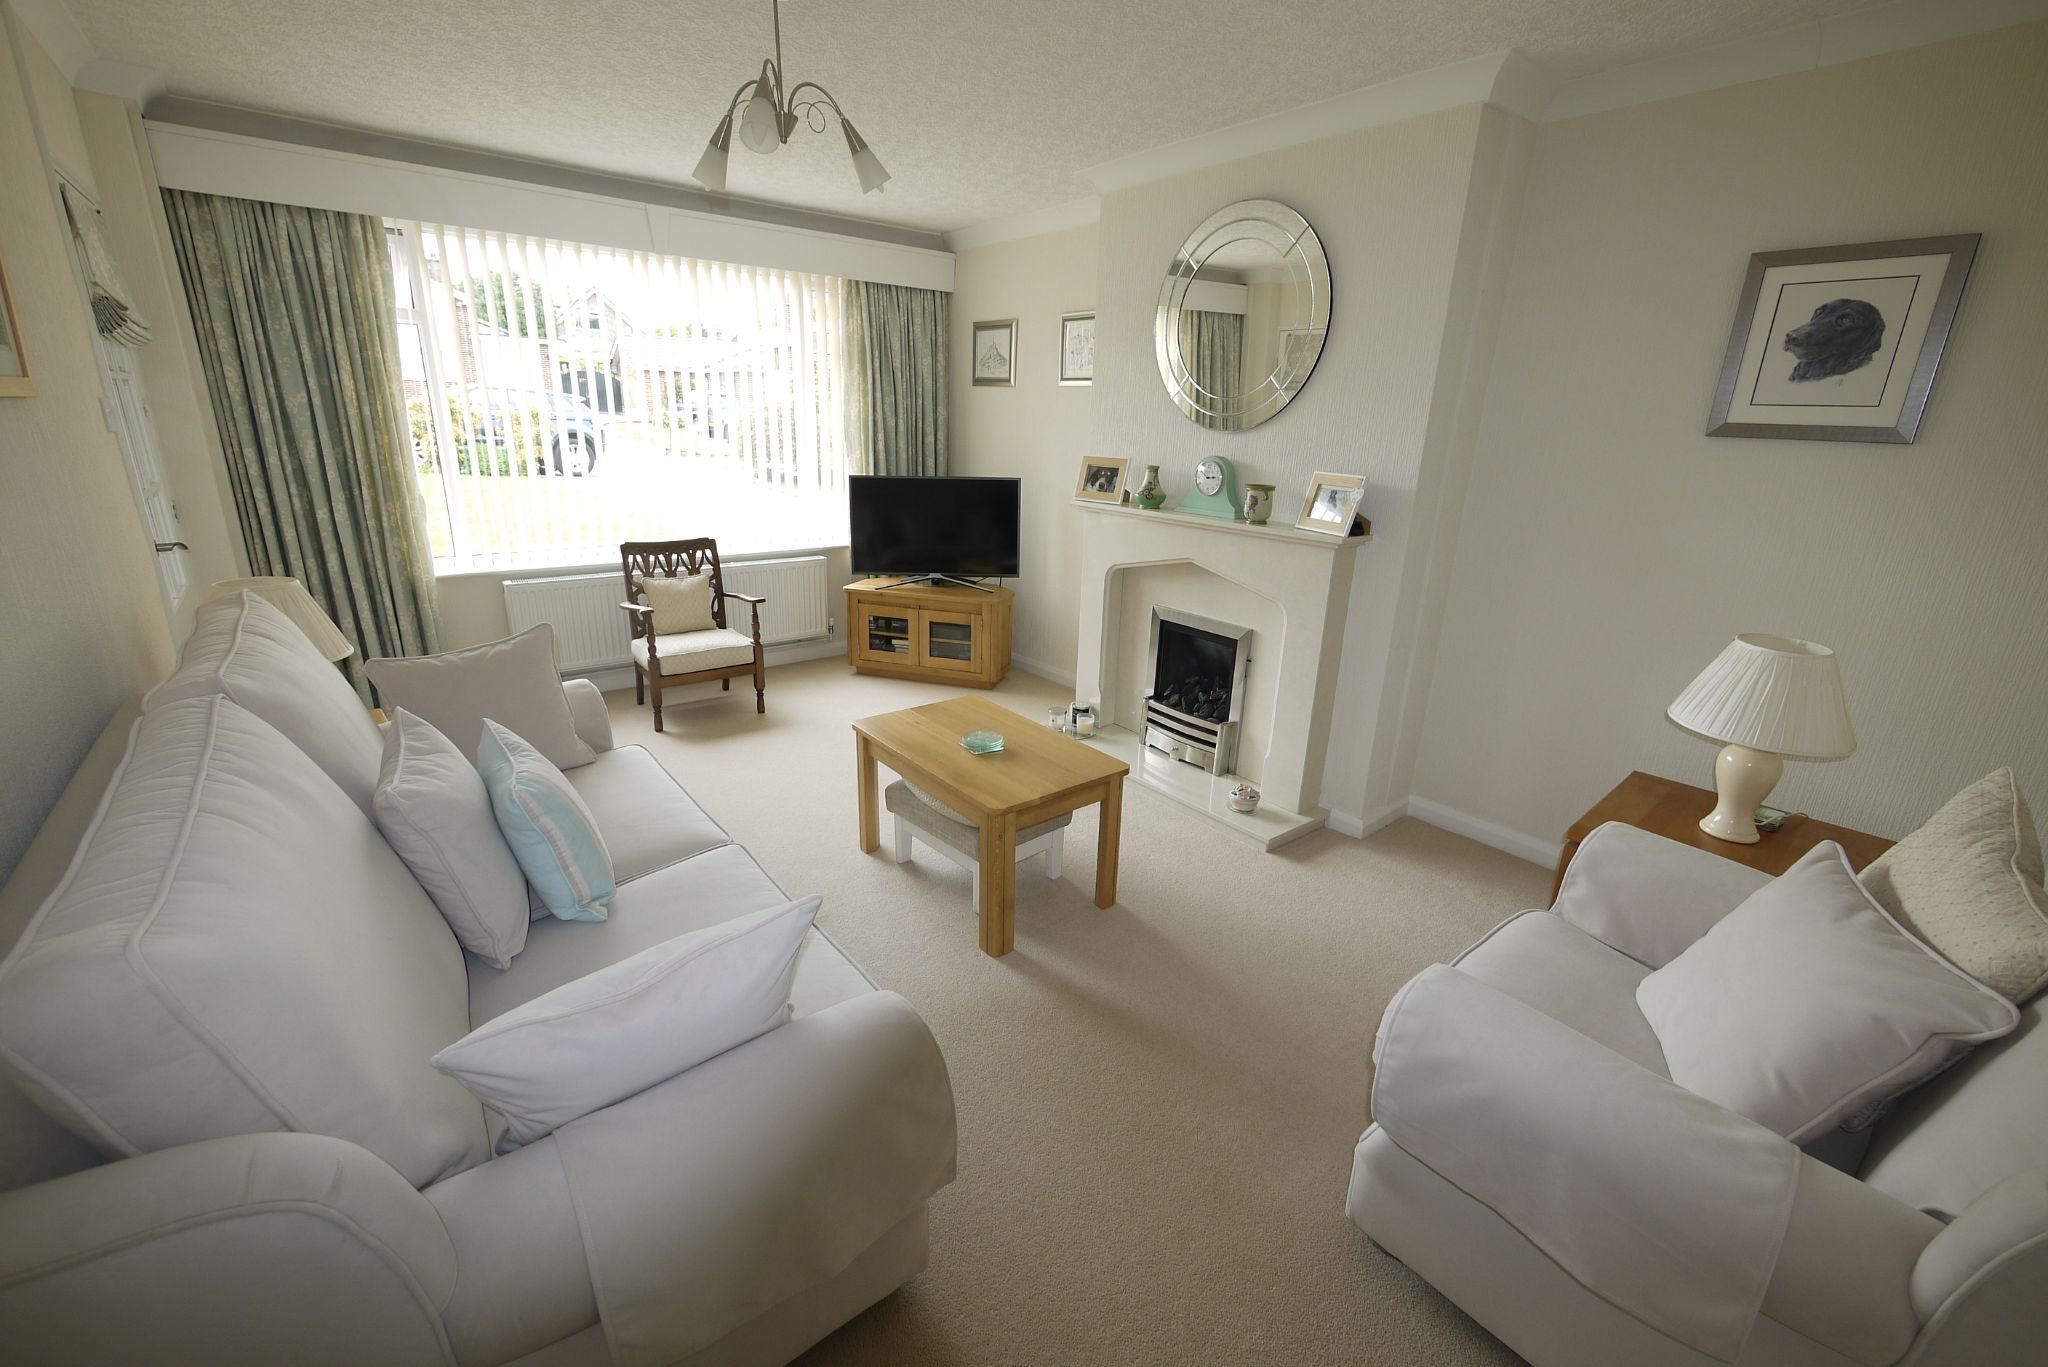 2 bedroom detached bungalow SSTC in Brighouse - Lounge 2.